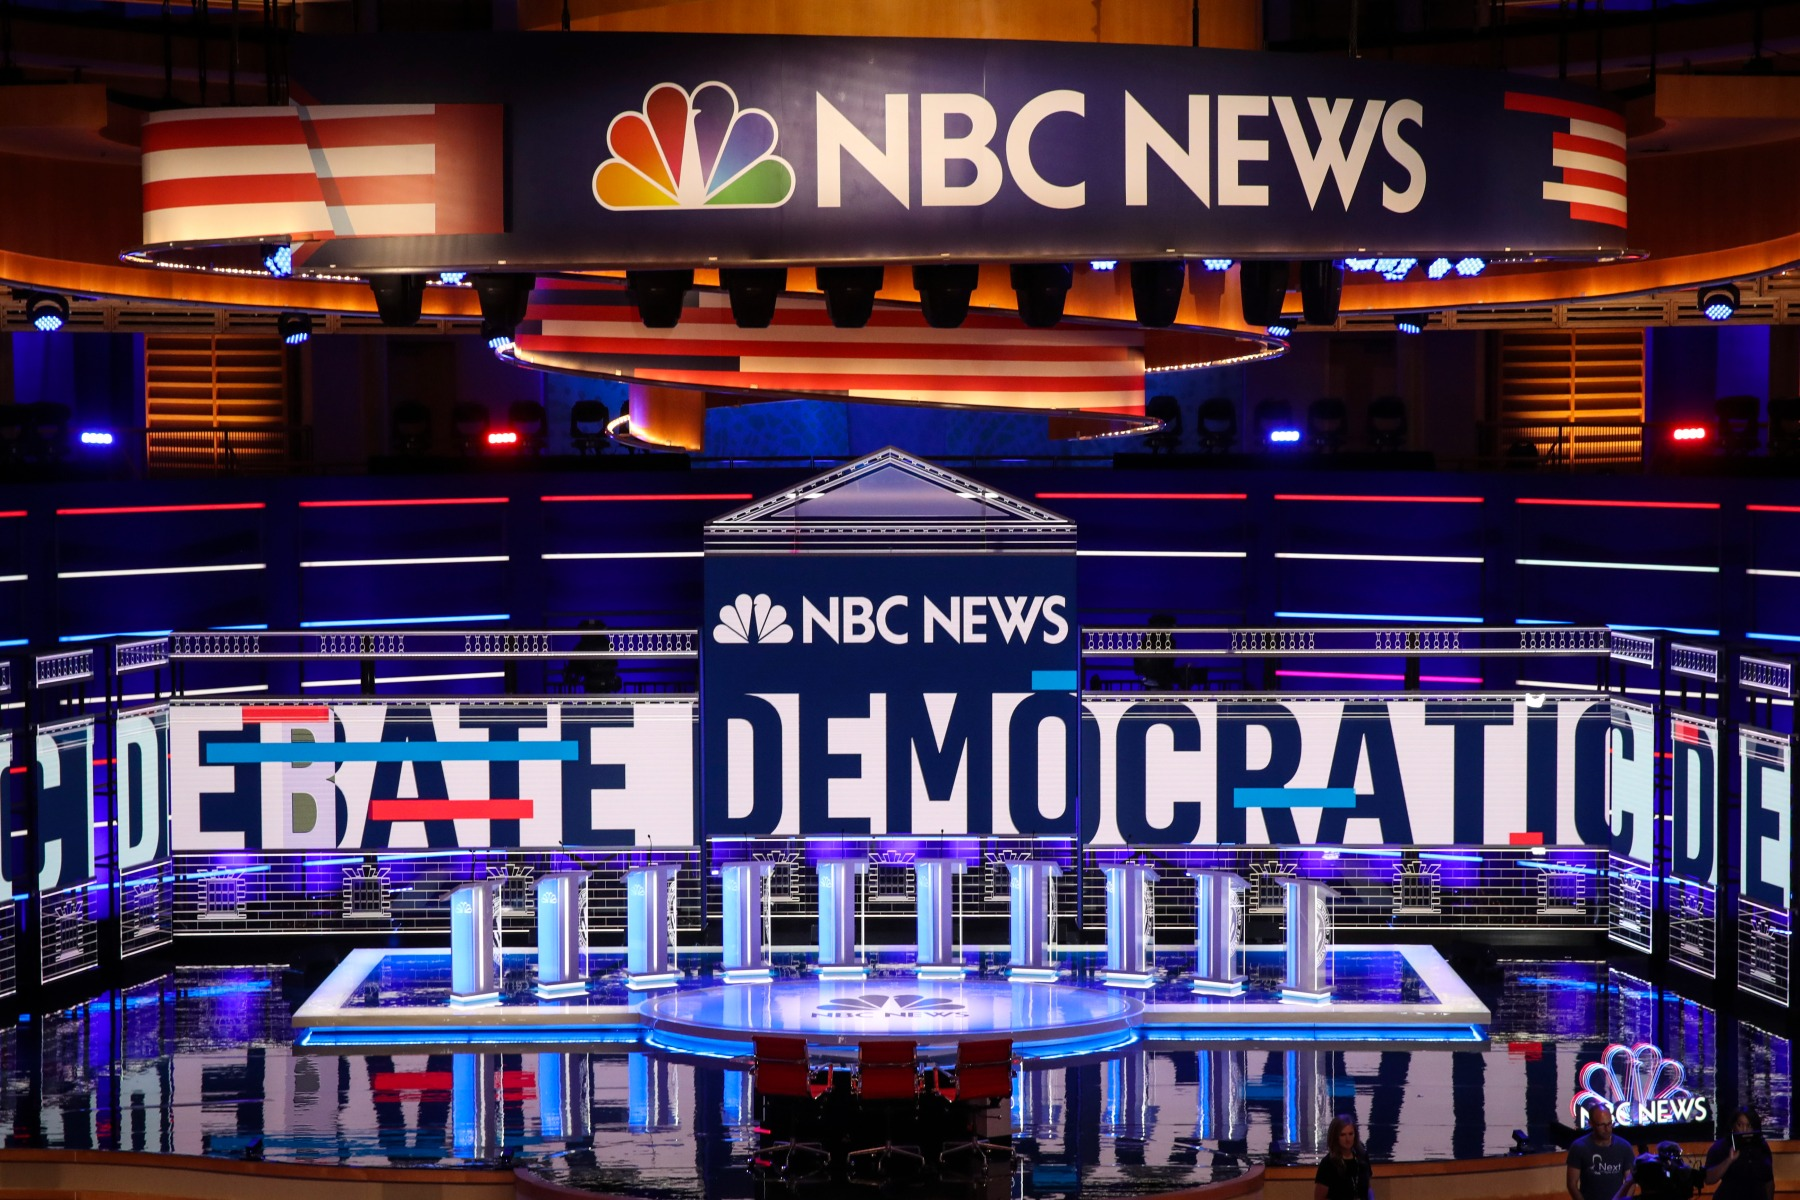 The stage is set for the first 2020 Democratic debate